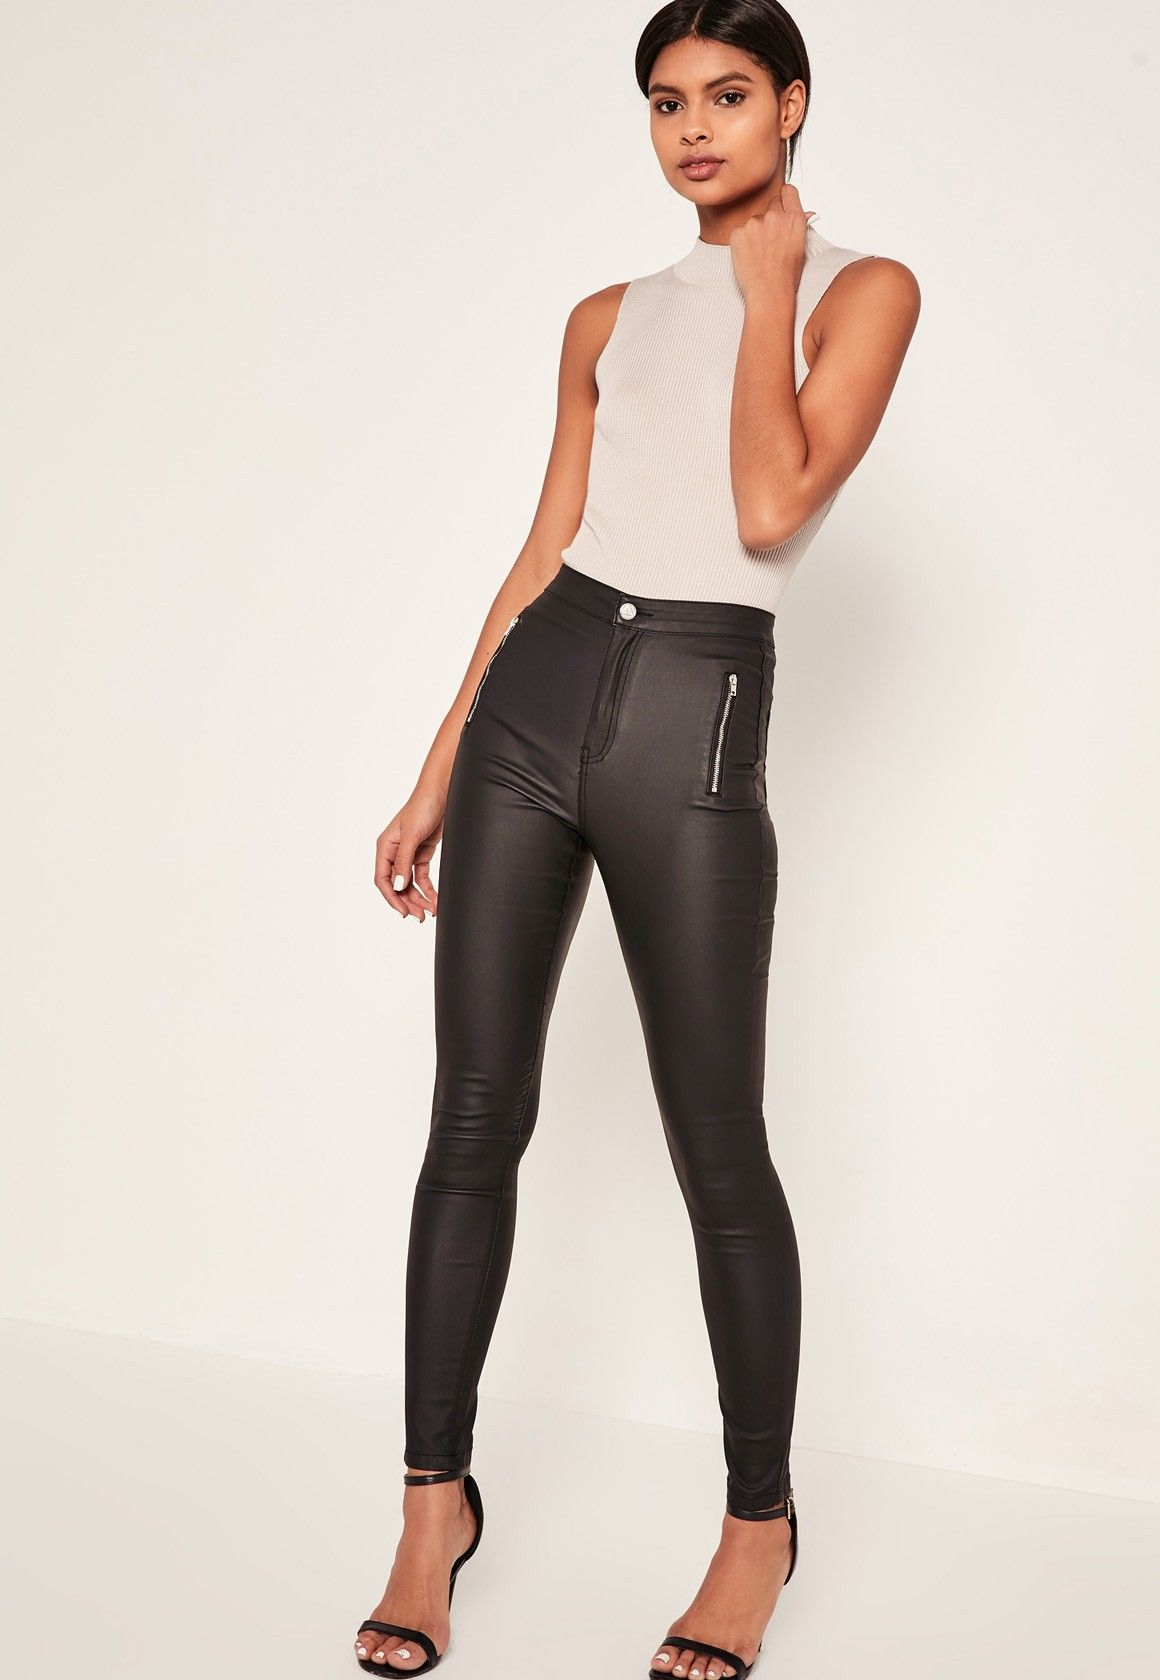 a927c3bbf3d56 4 - Missguided - Black Vice High Waisted Coated Zipped Skinny Jeans ...